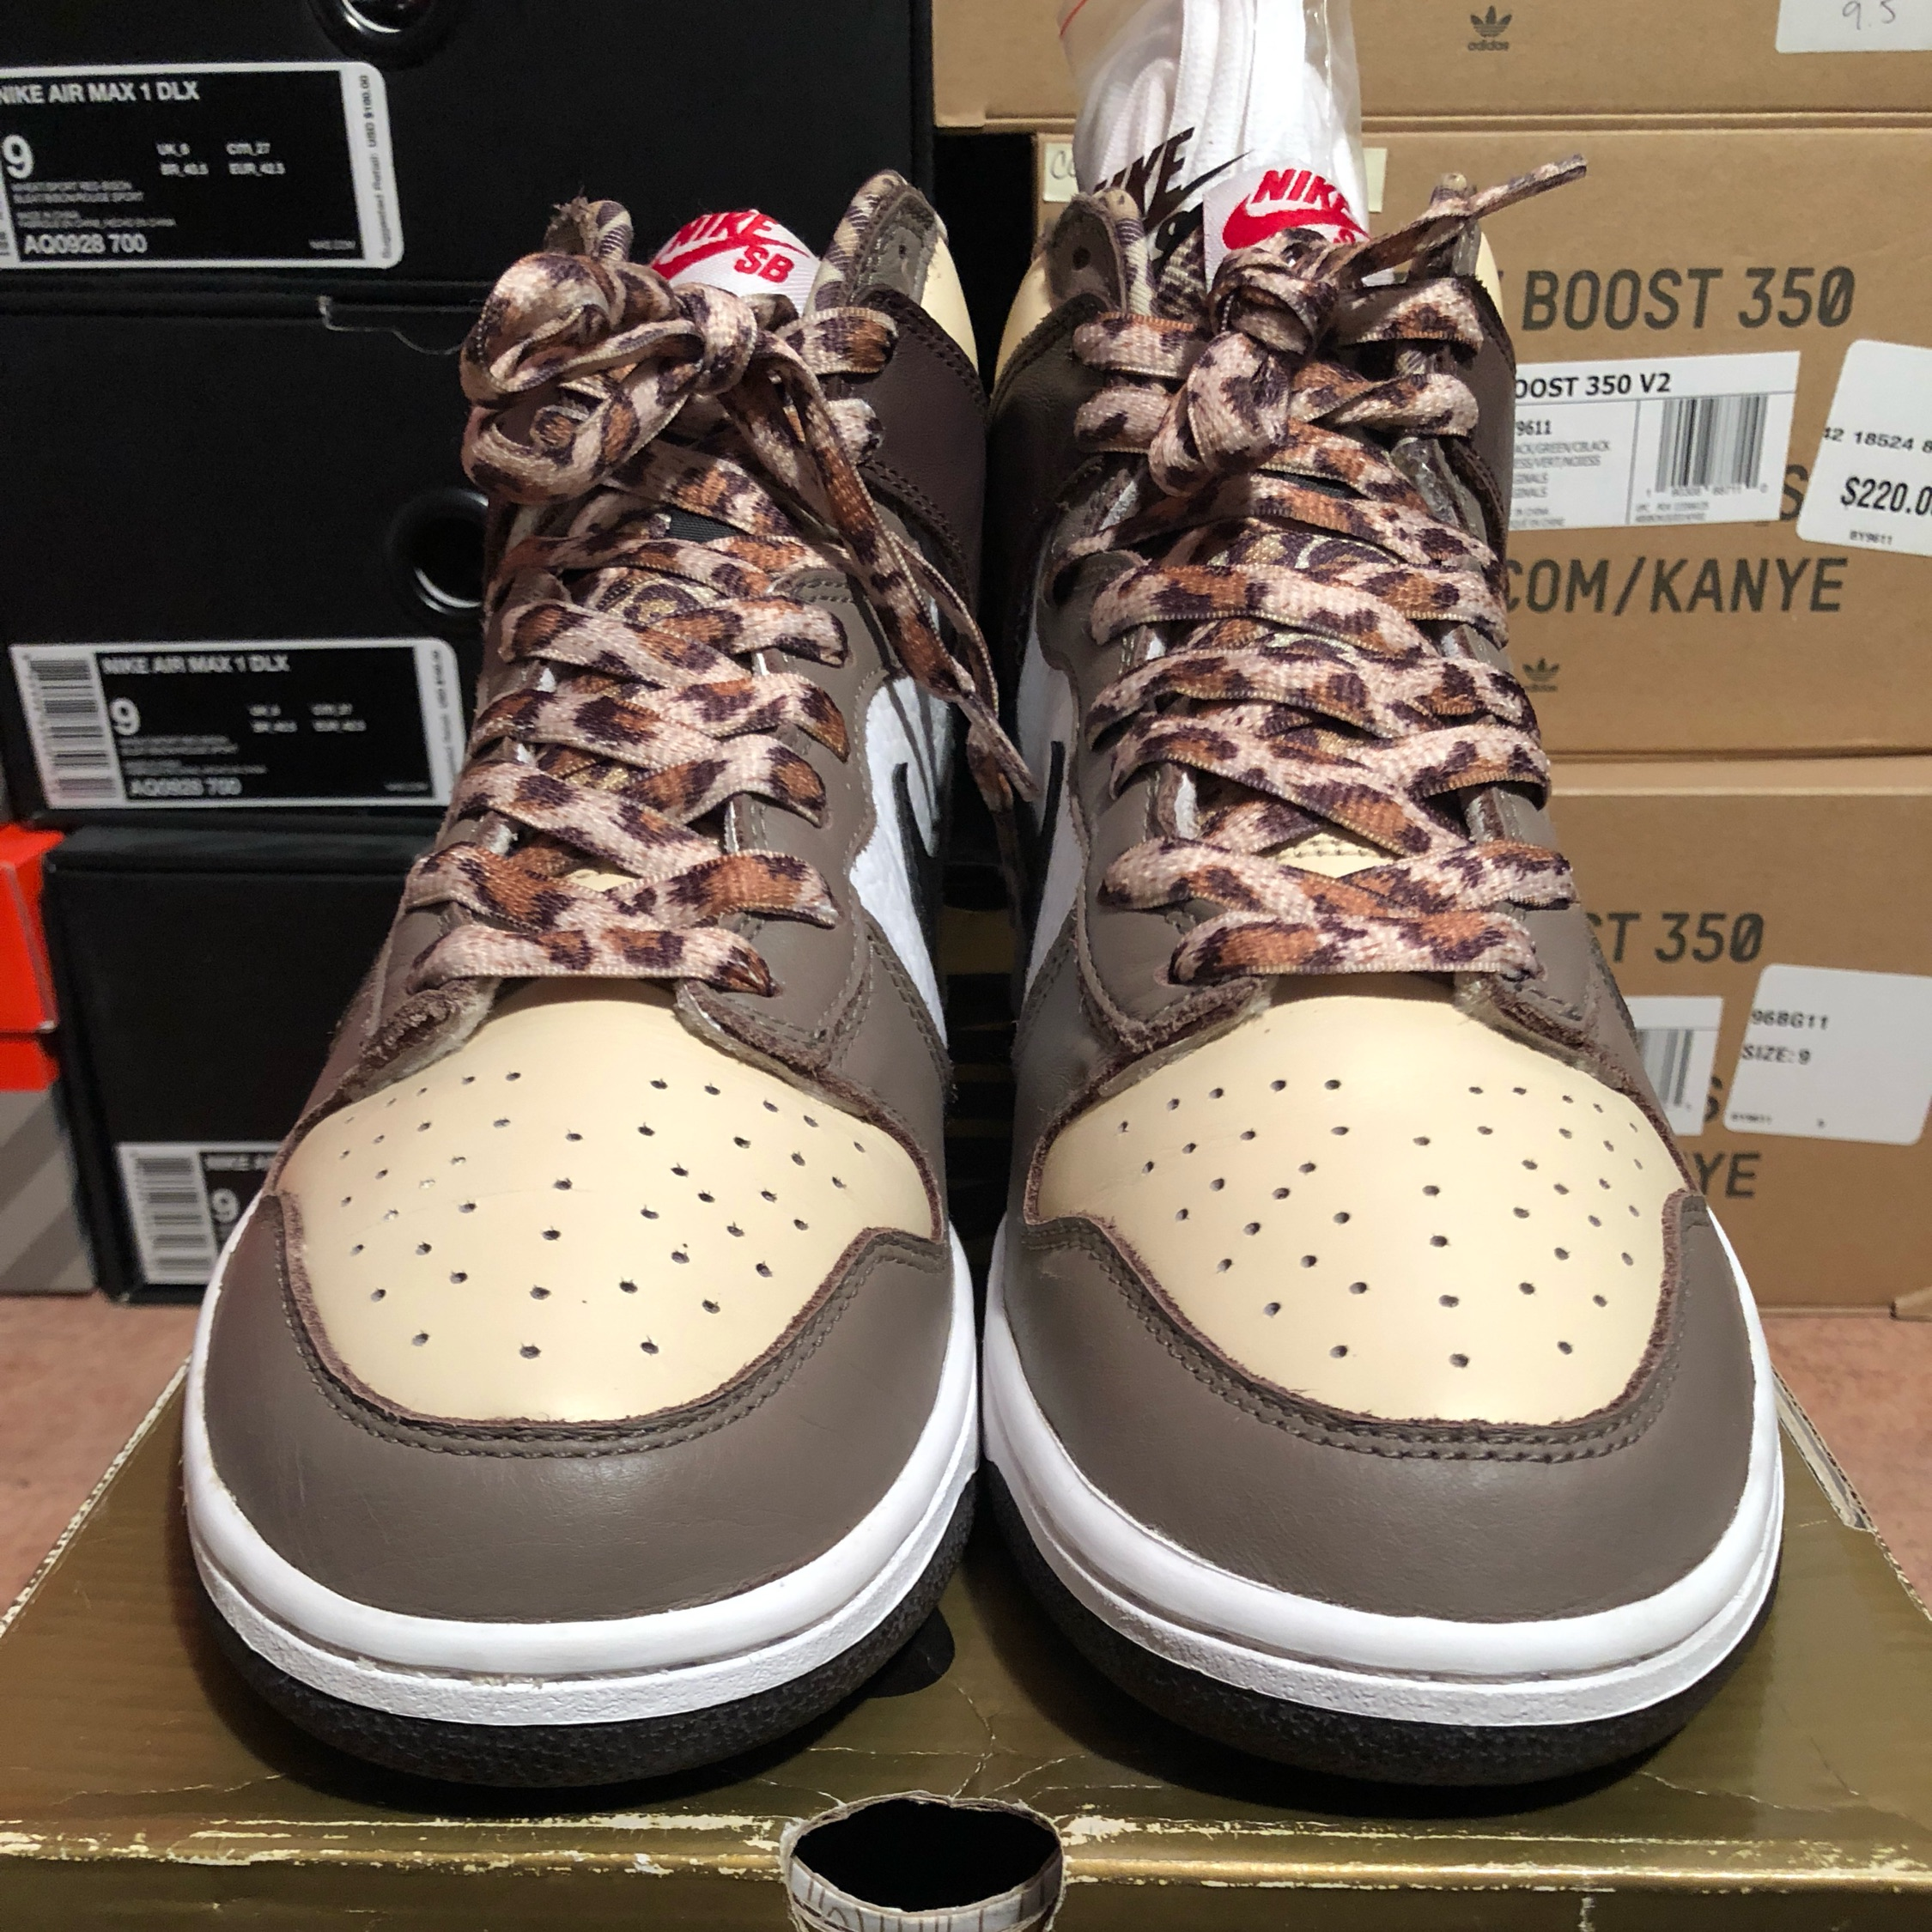 competitive price 9d256 a1afb Nike Sb Dunk High Ferris Bueller Sz 9.5